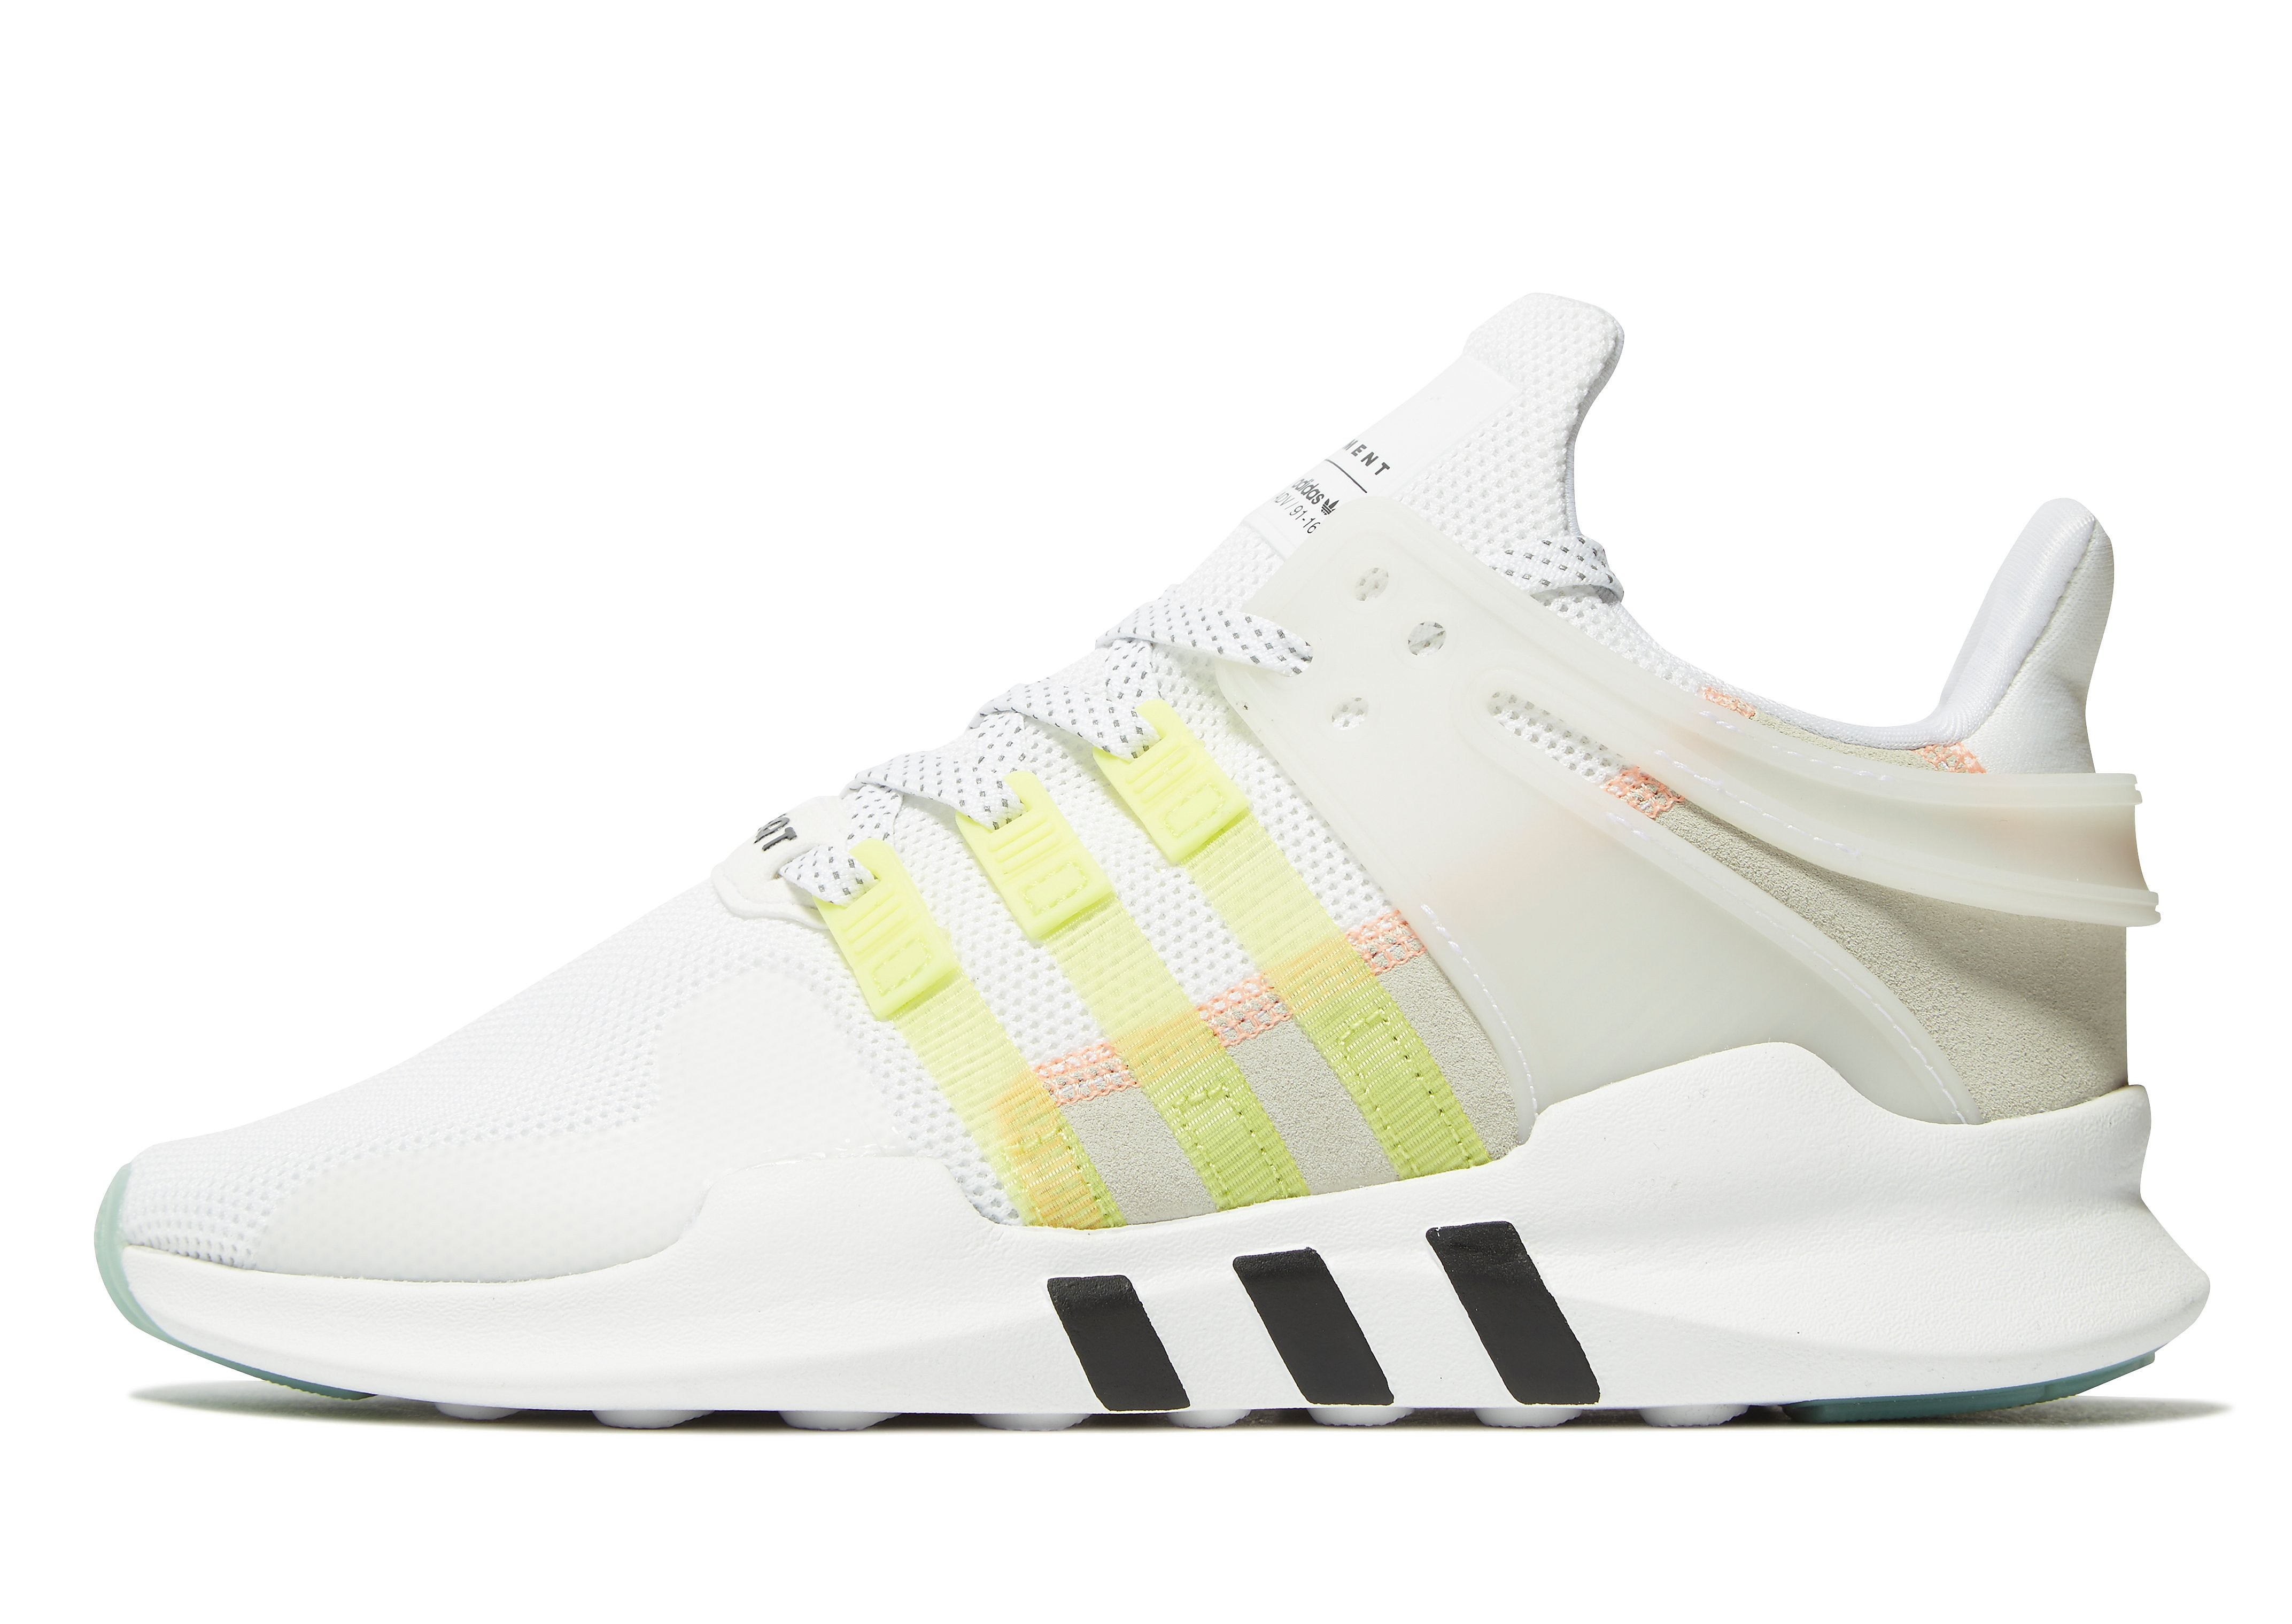 wholesale dealer e5d13 07d87 ... where can i buy barato negro gris mujer adidas eqt support adv adidas  originals eqt support